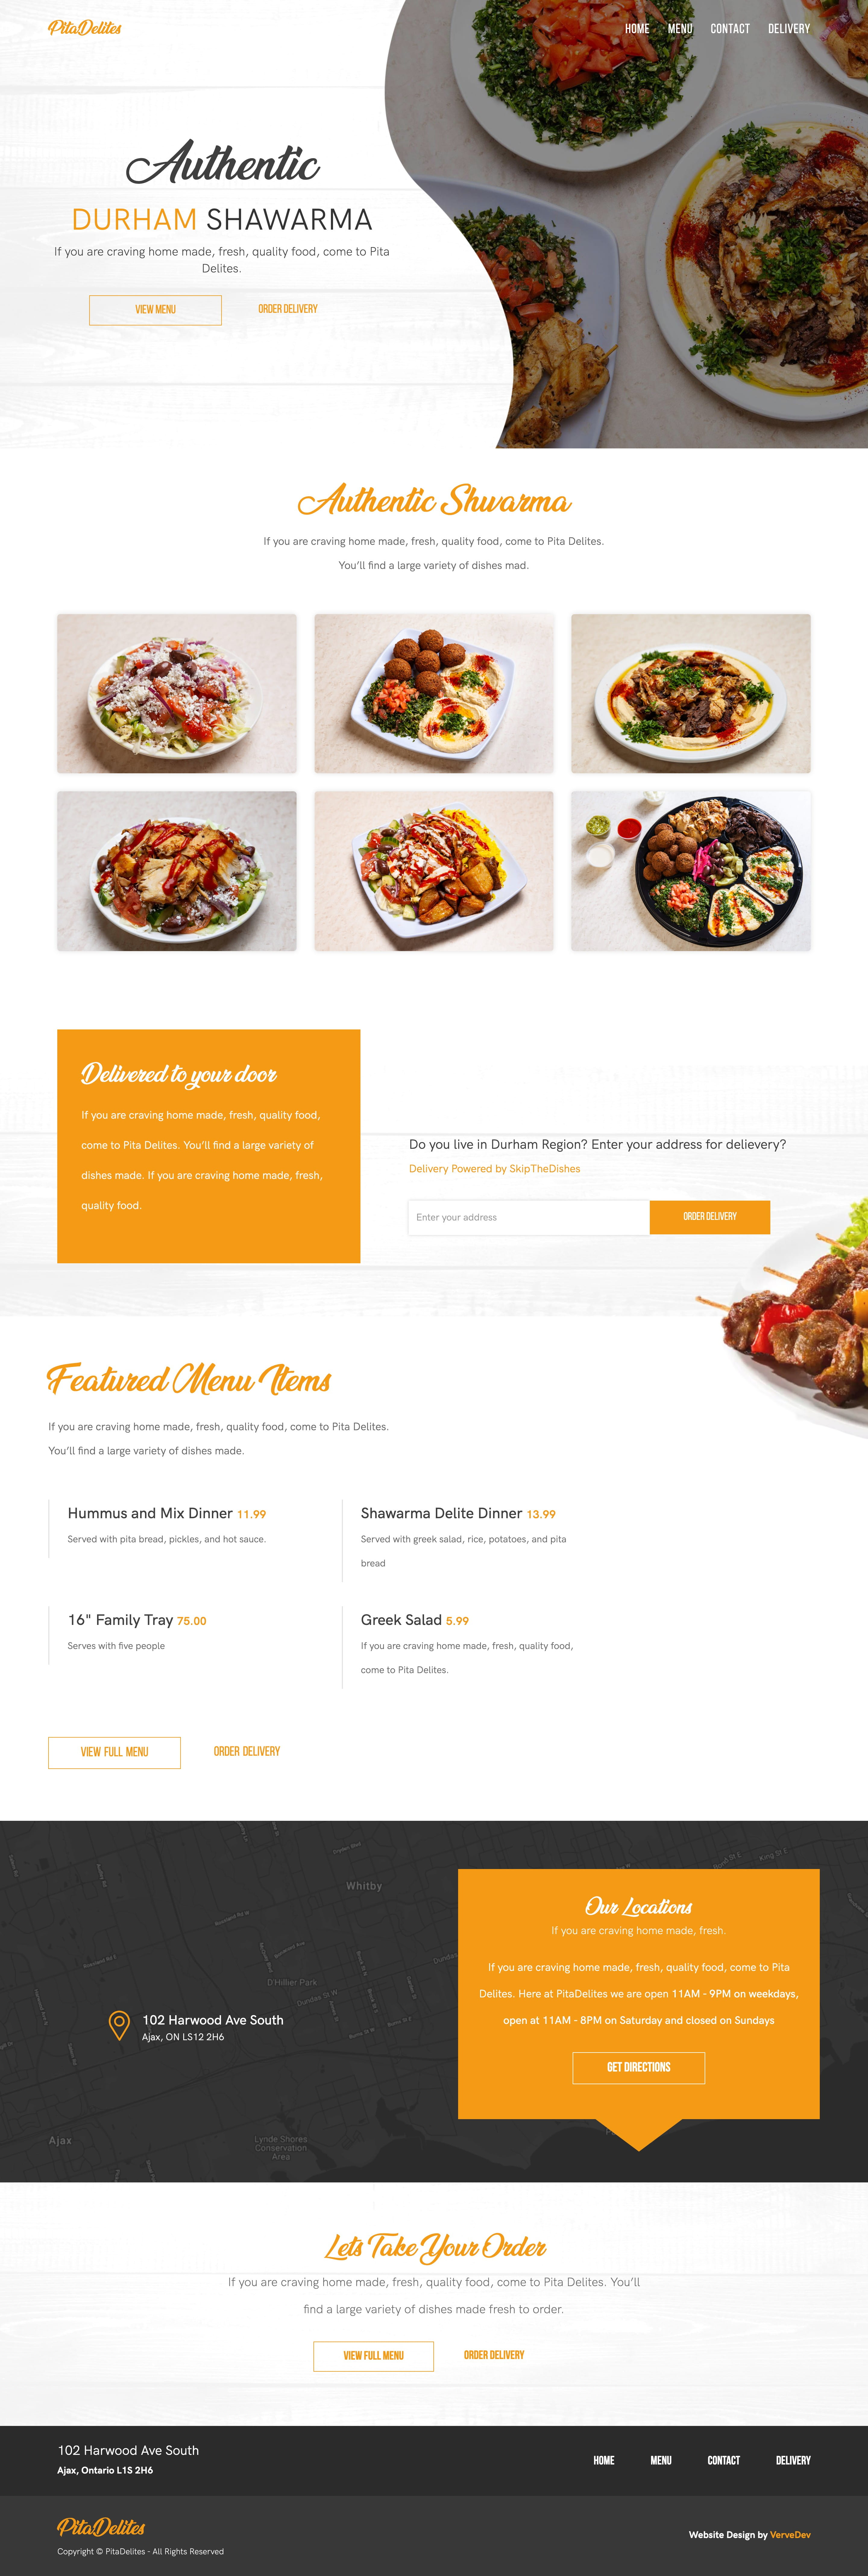 Peterborough-website-design-portfolio-1